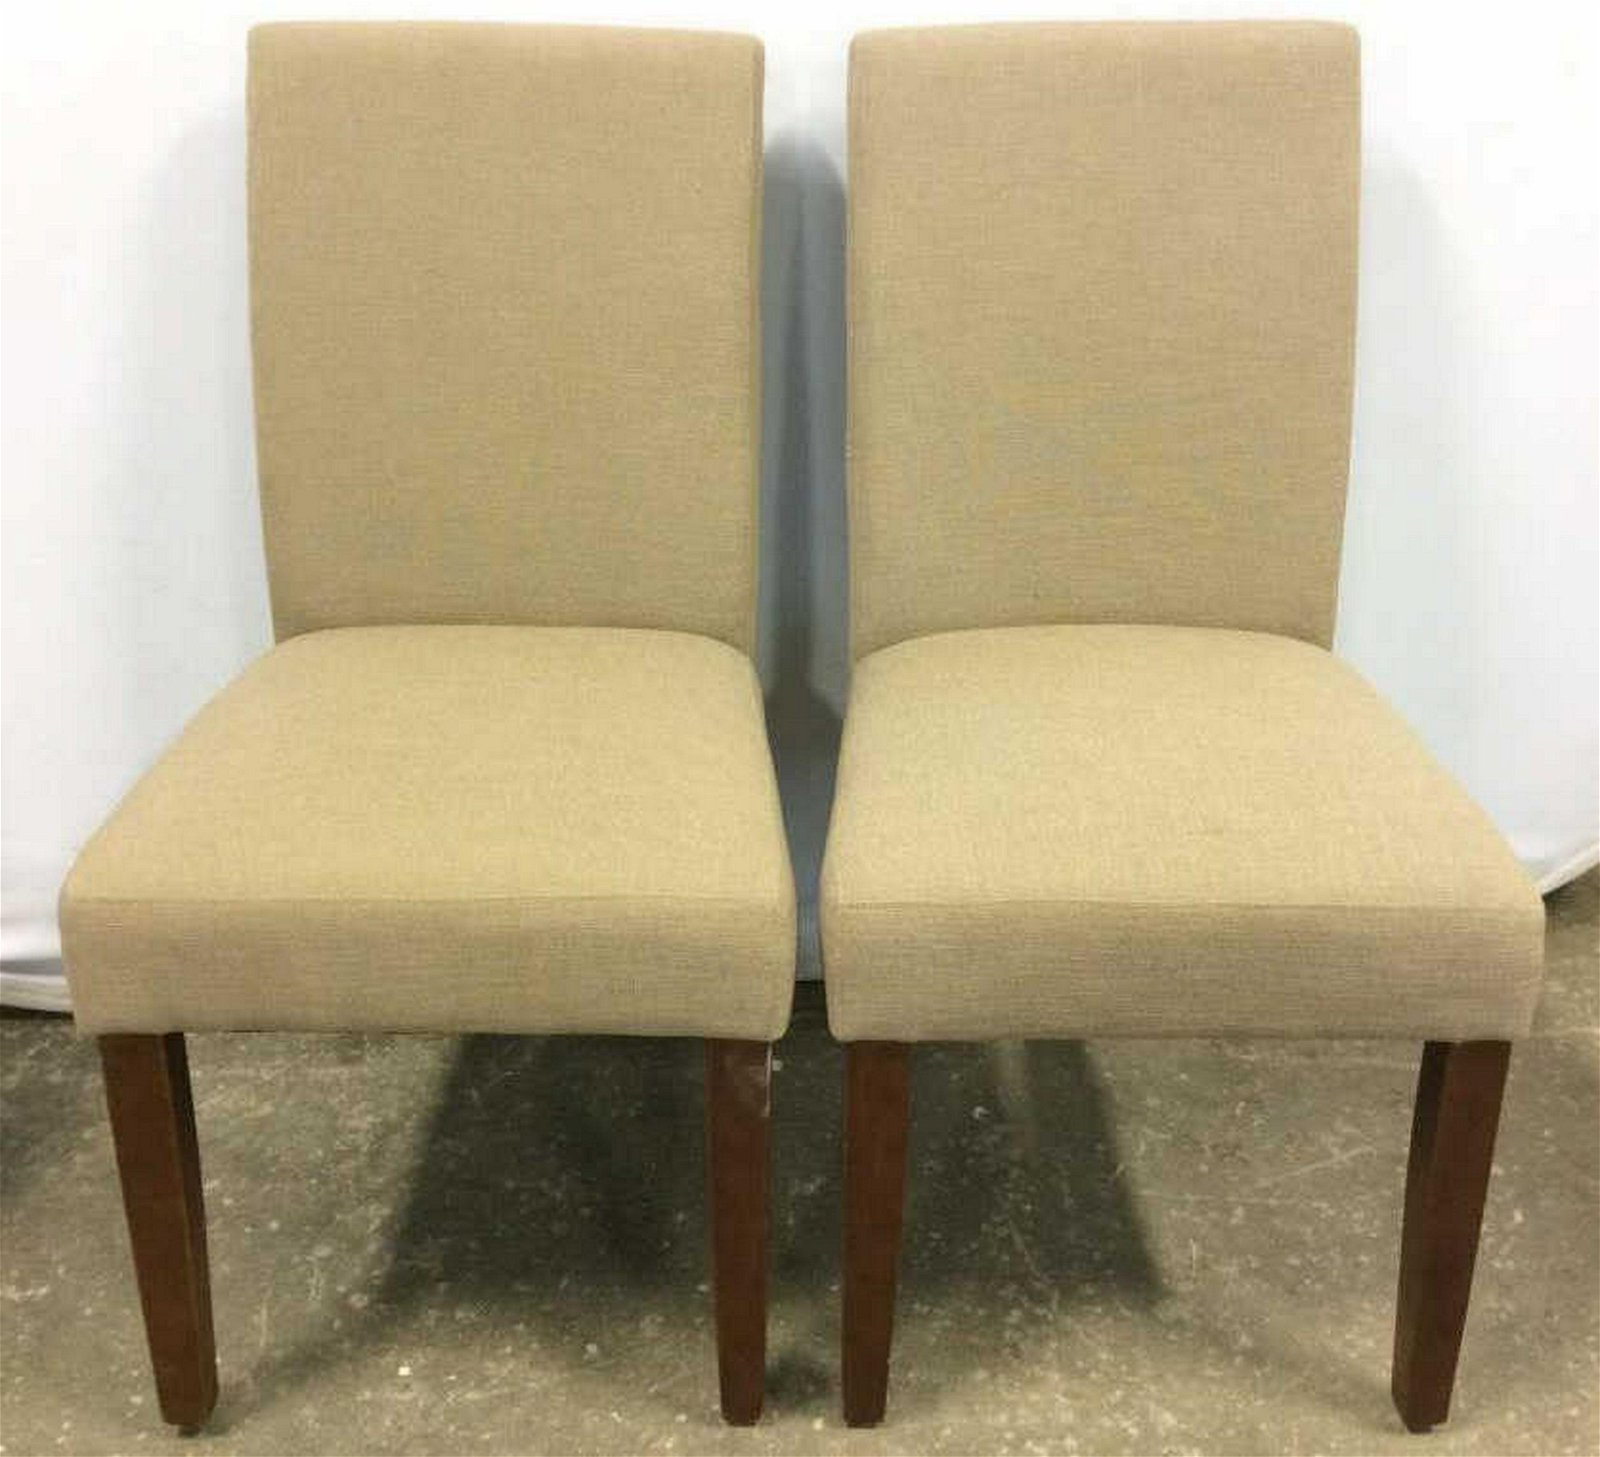 Pair Sand Toned Side Chairs Chairs are sand toned. Each